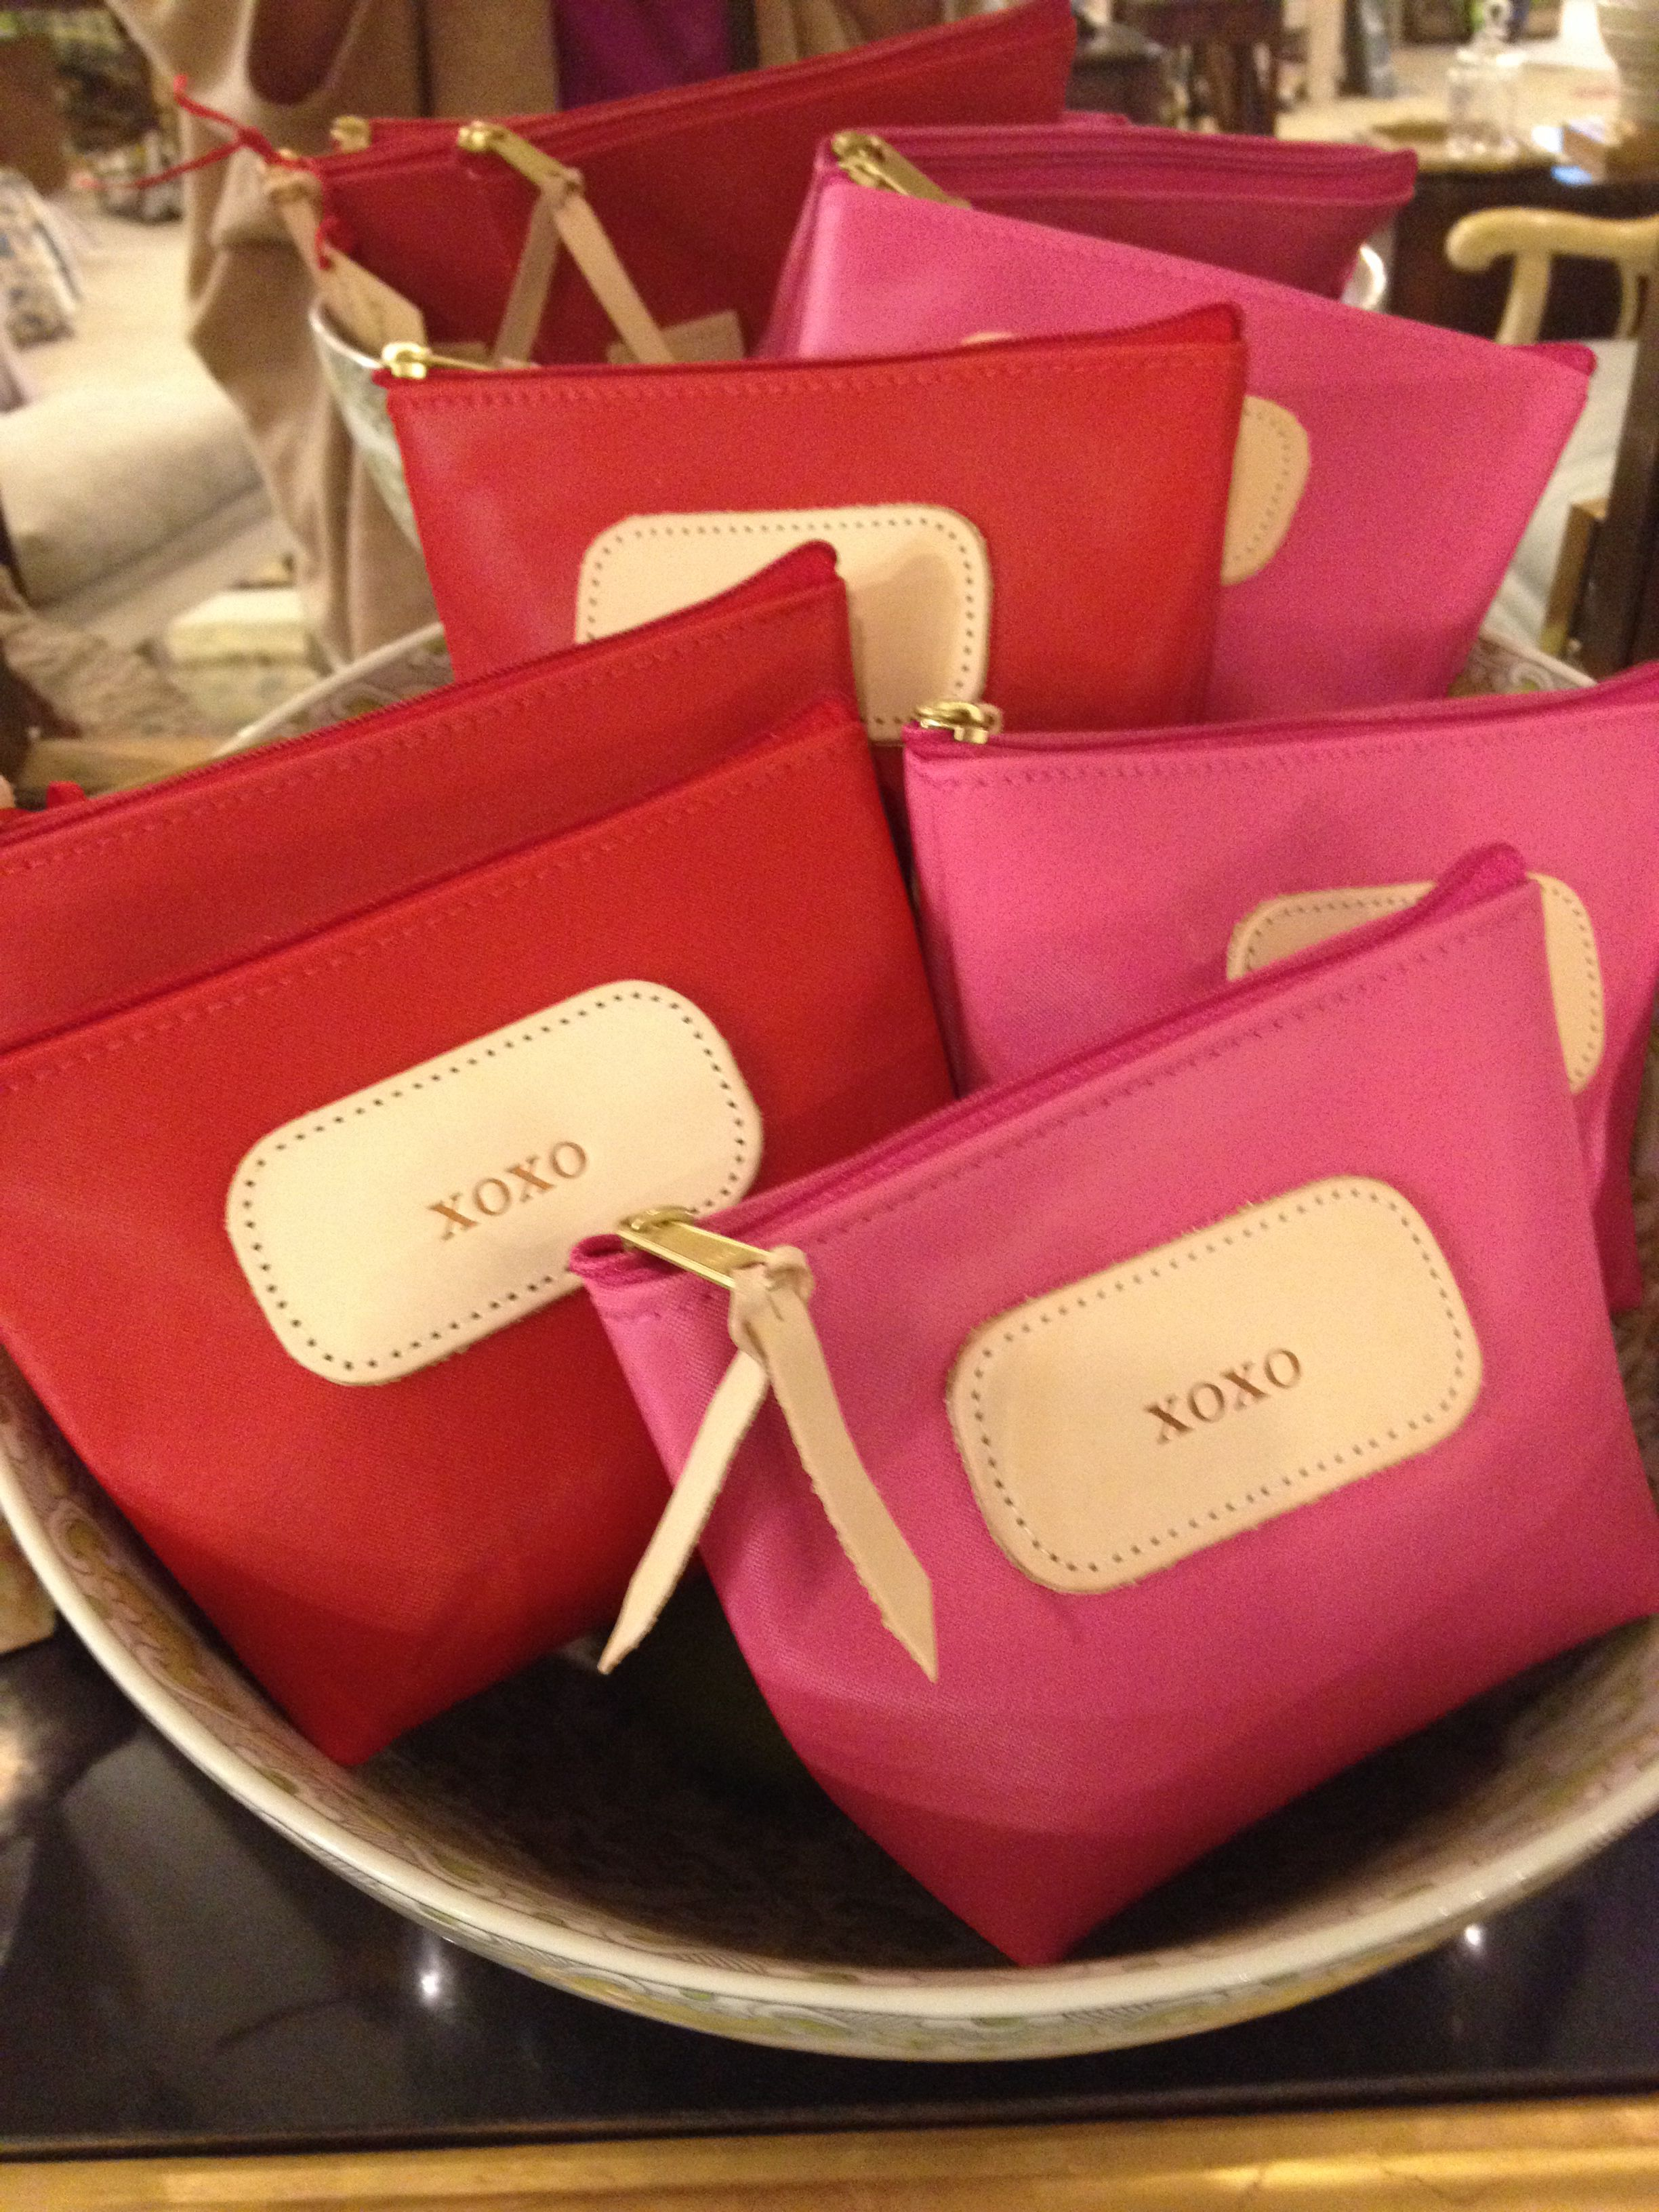 Jon Hart makeup bags perfect for your Valentine